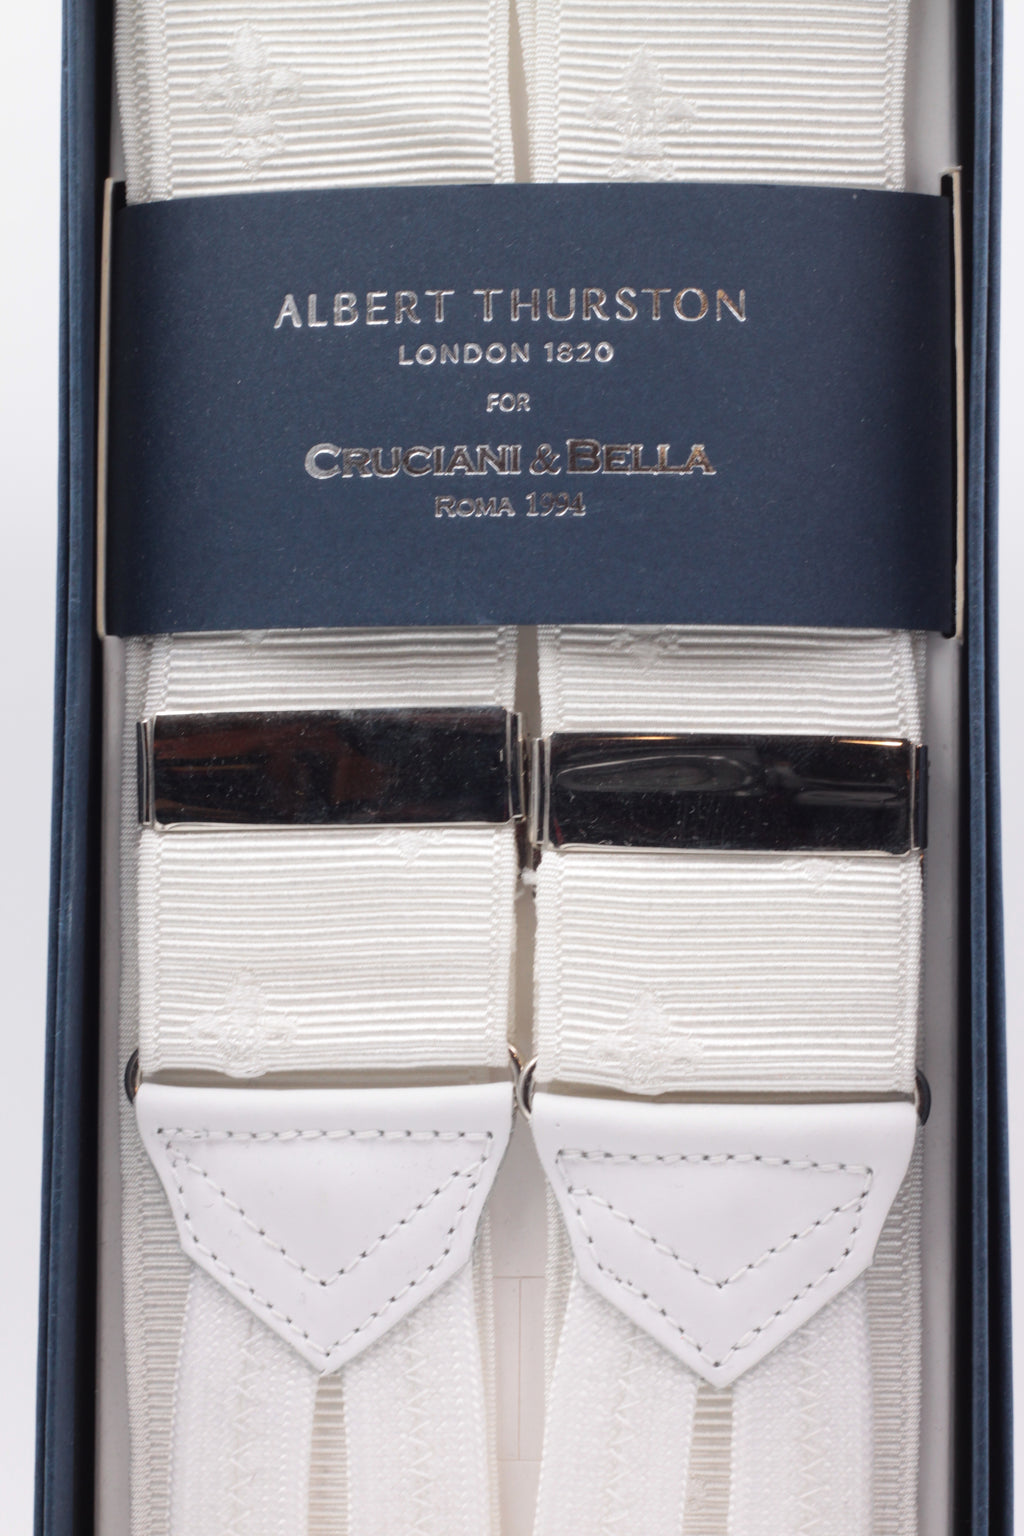 Albert Thurston for Cruciani & Bella Made in England Adjustable Sizing 40 mm Woven Barathea  White, white Florentine lily Braces Braid ends Y-Shaped Nickel Fittings Size: XL